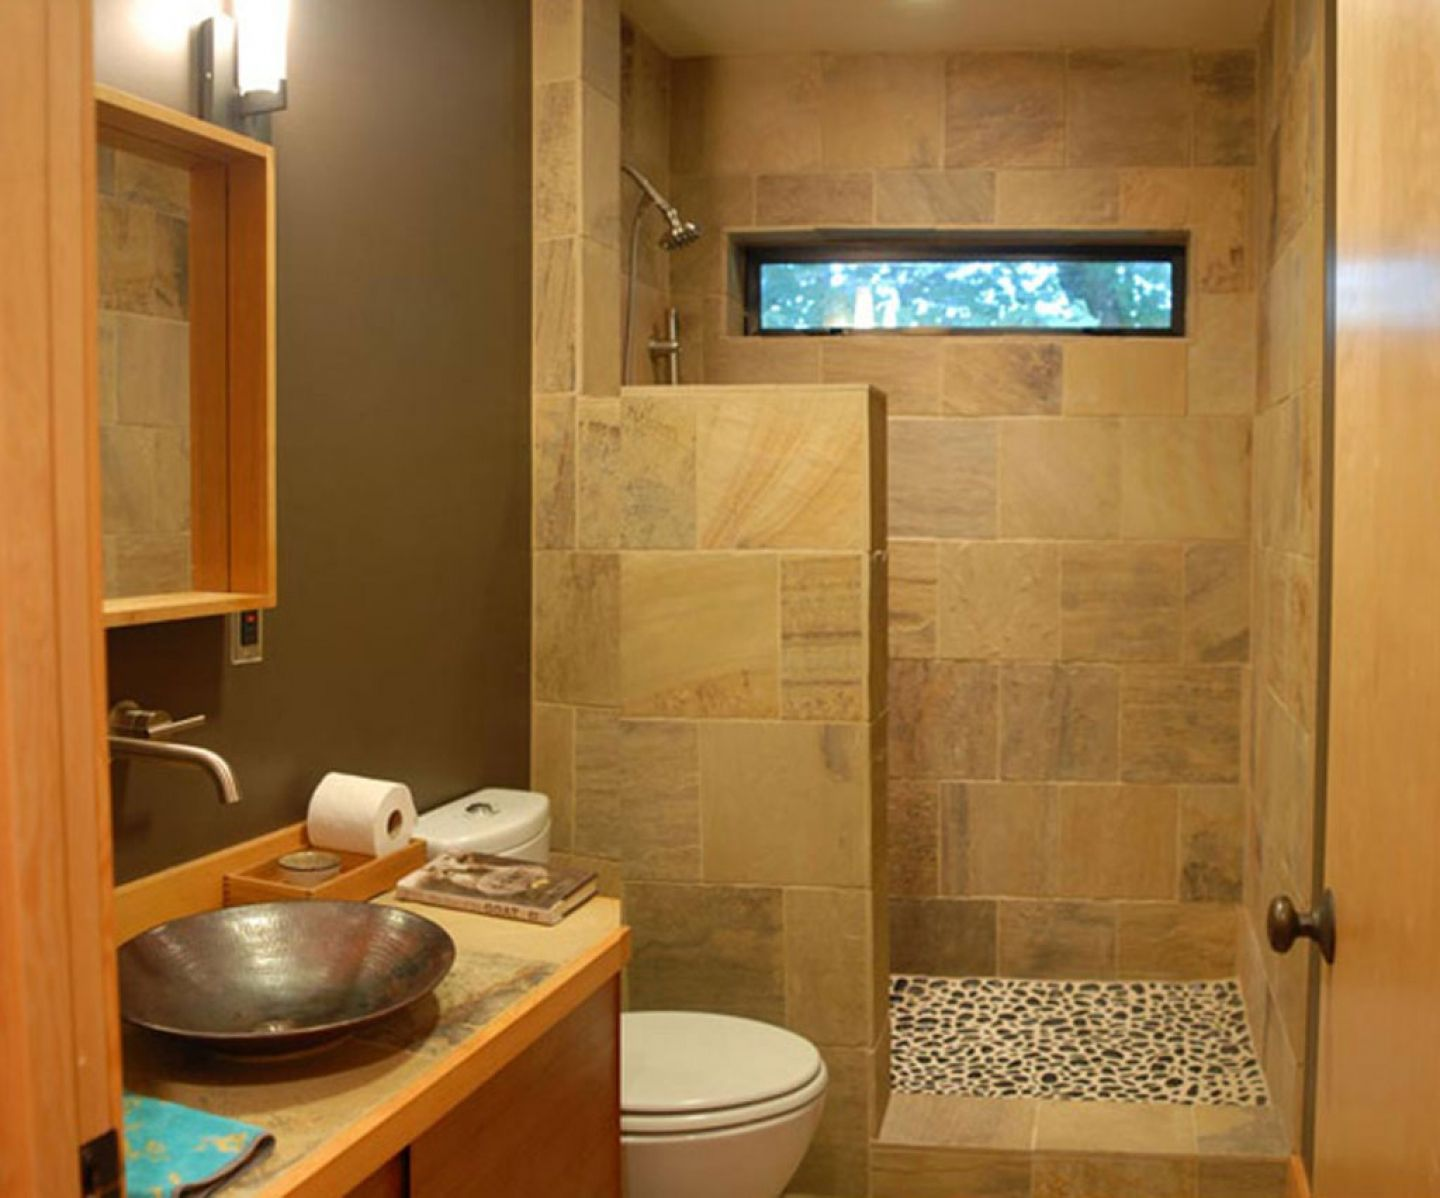 30 best small bathroom ideas small bathroom ranch style and ranch 30 best small bathroom ideas